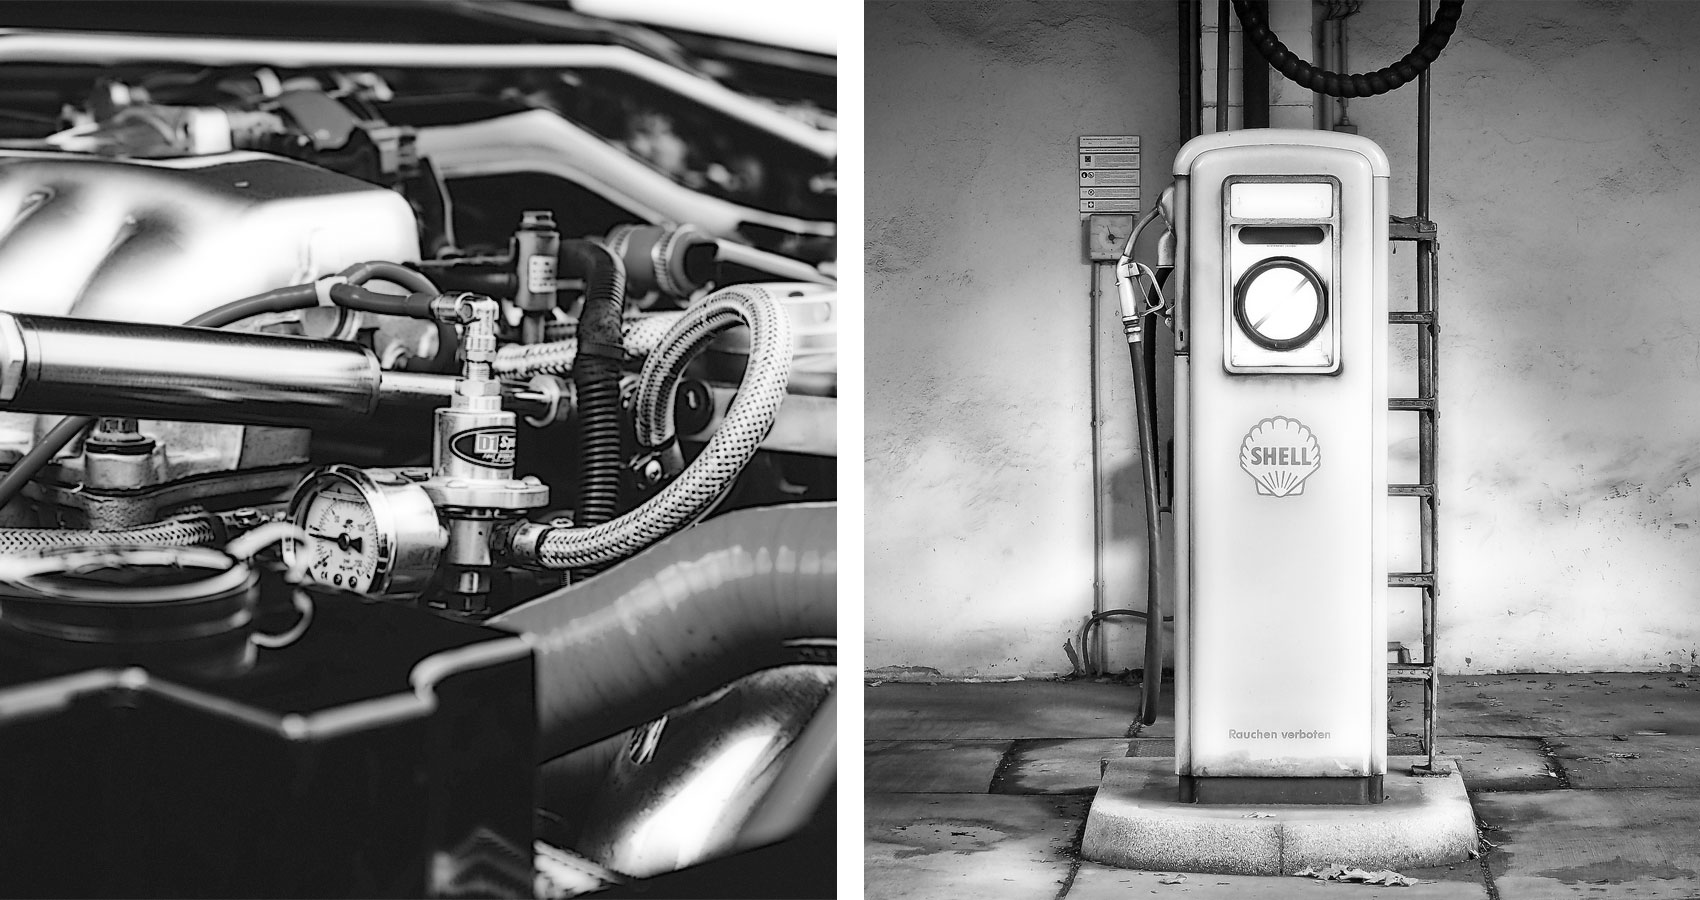 DIPTYCH ON FUEL, a poem by Izabella T. Kostka at Spillwords.com